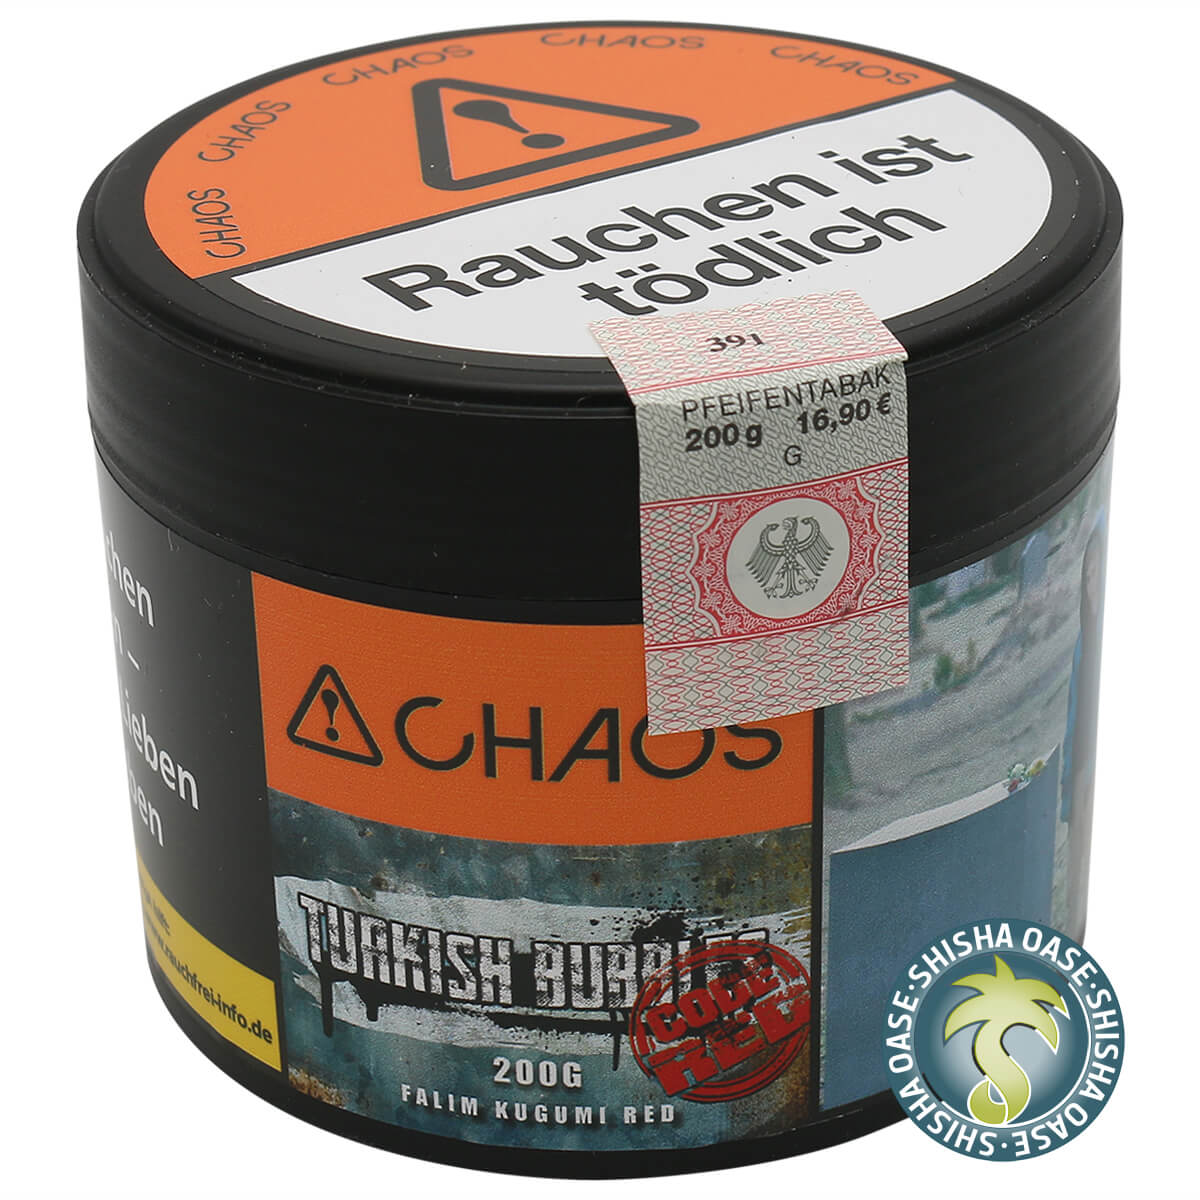 Chaos Tabak Turkish Bubbles Code Red 200g